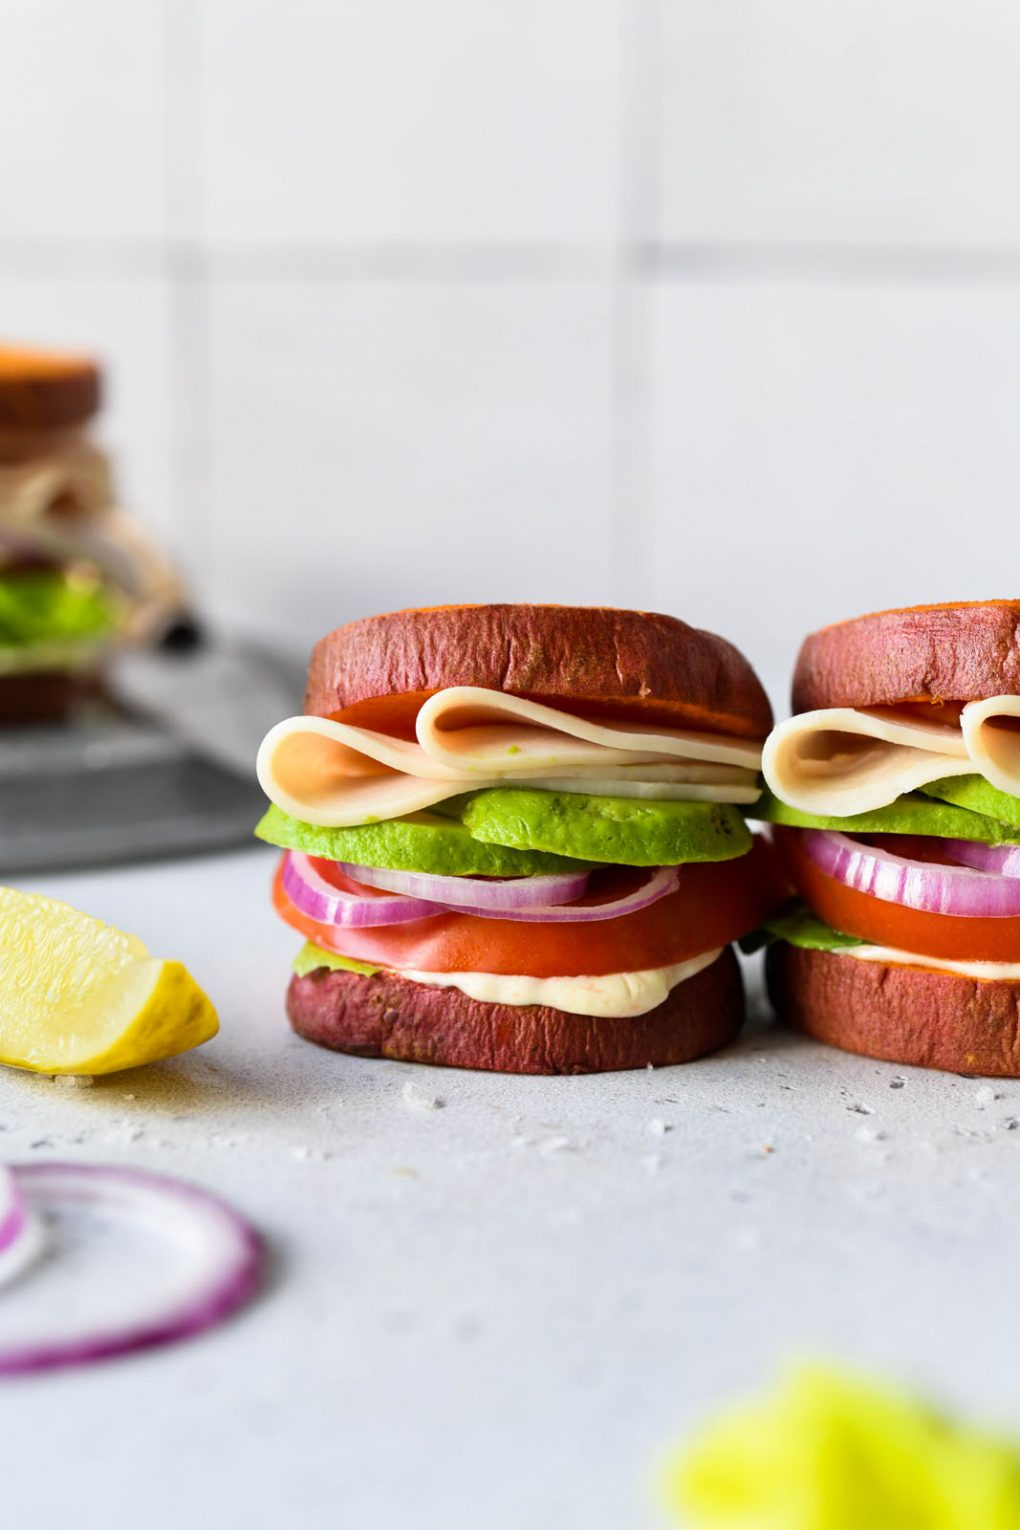 Straight on picture of a little deli style turkey sandwich made with roasted sweet potato rounds as buns. On a light background, next to a pickle spear and a few onion rings.